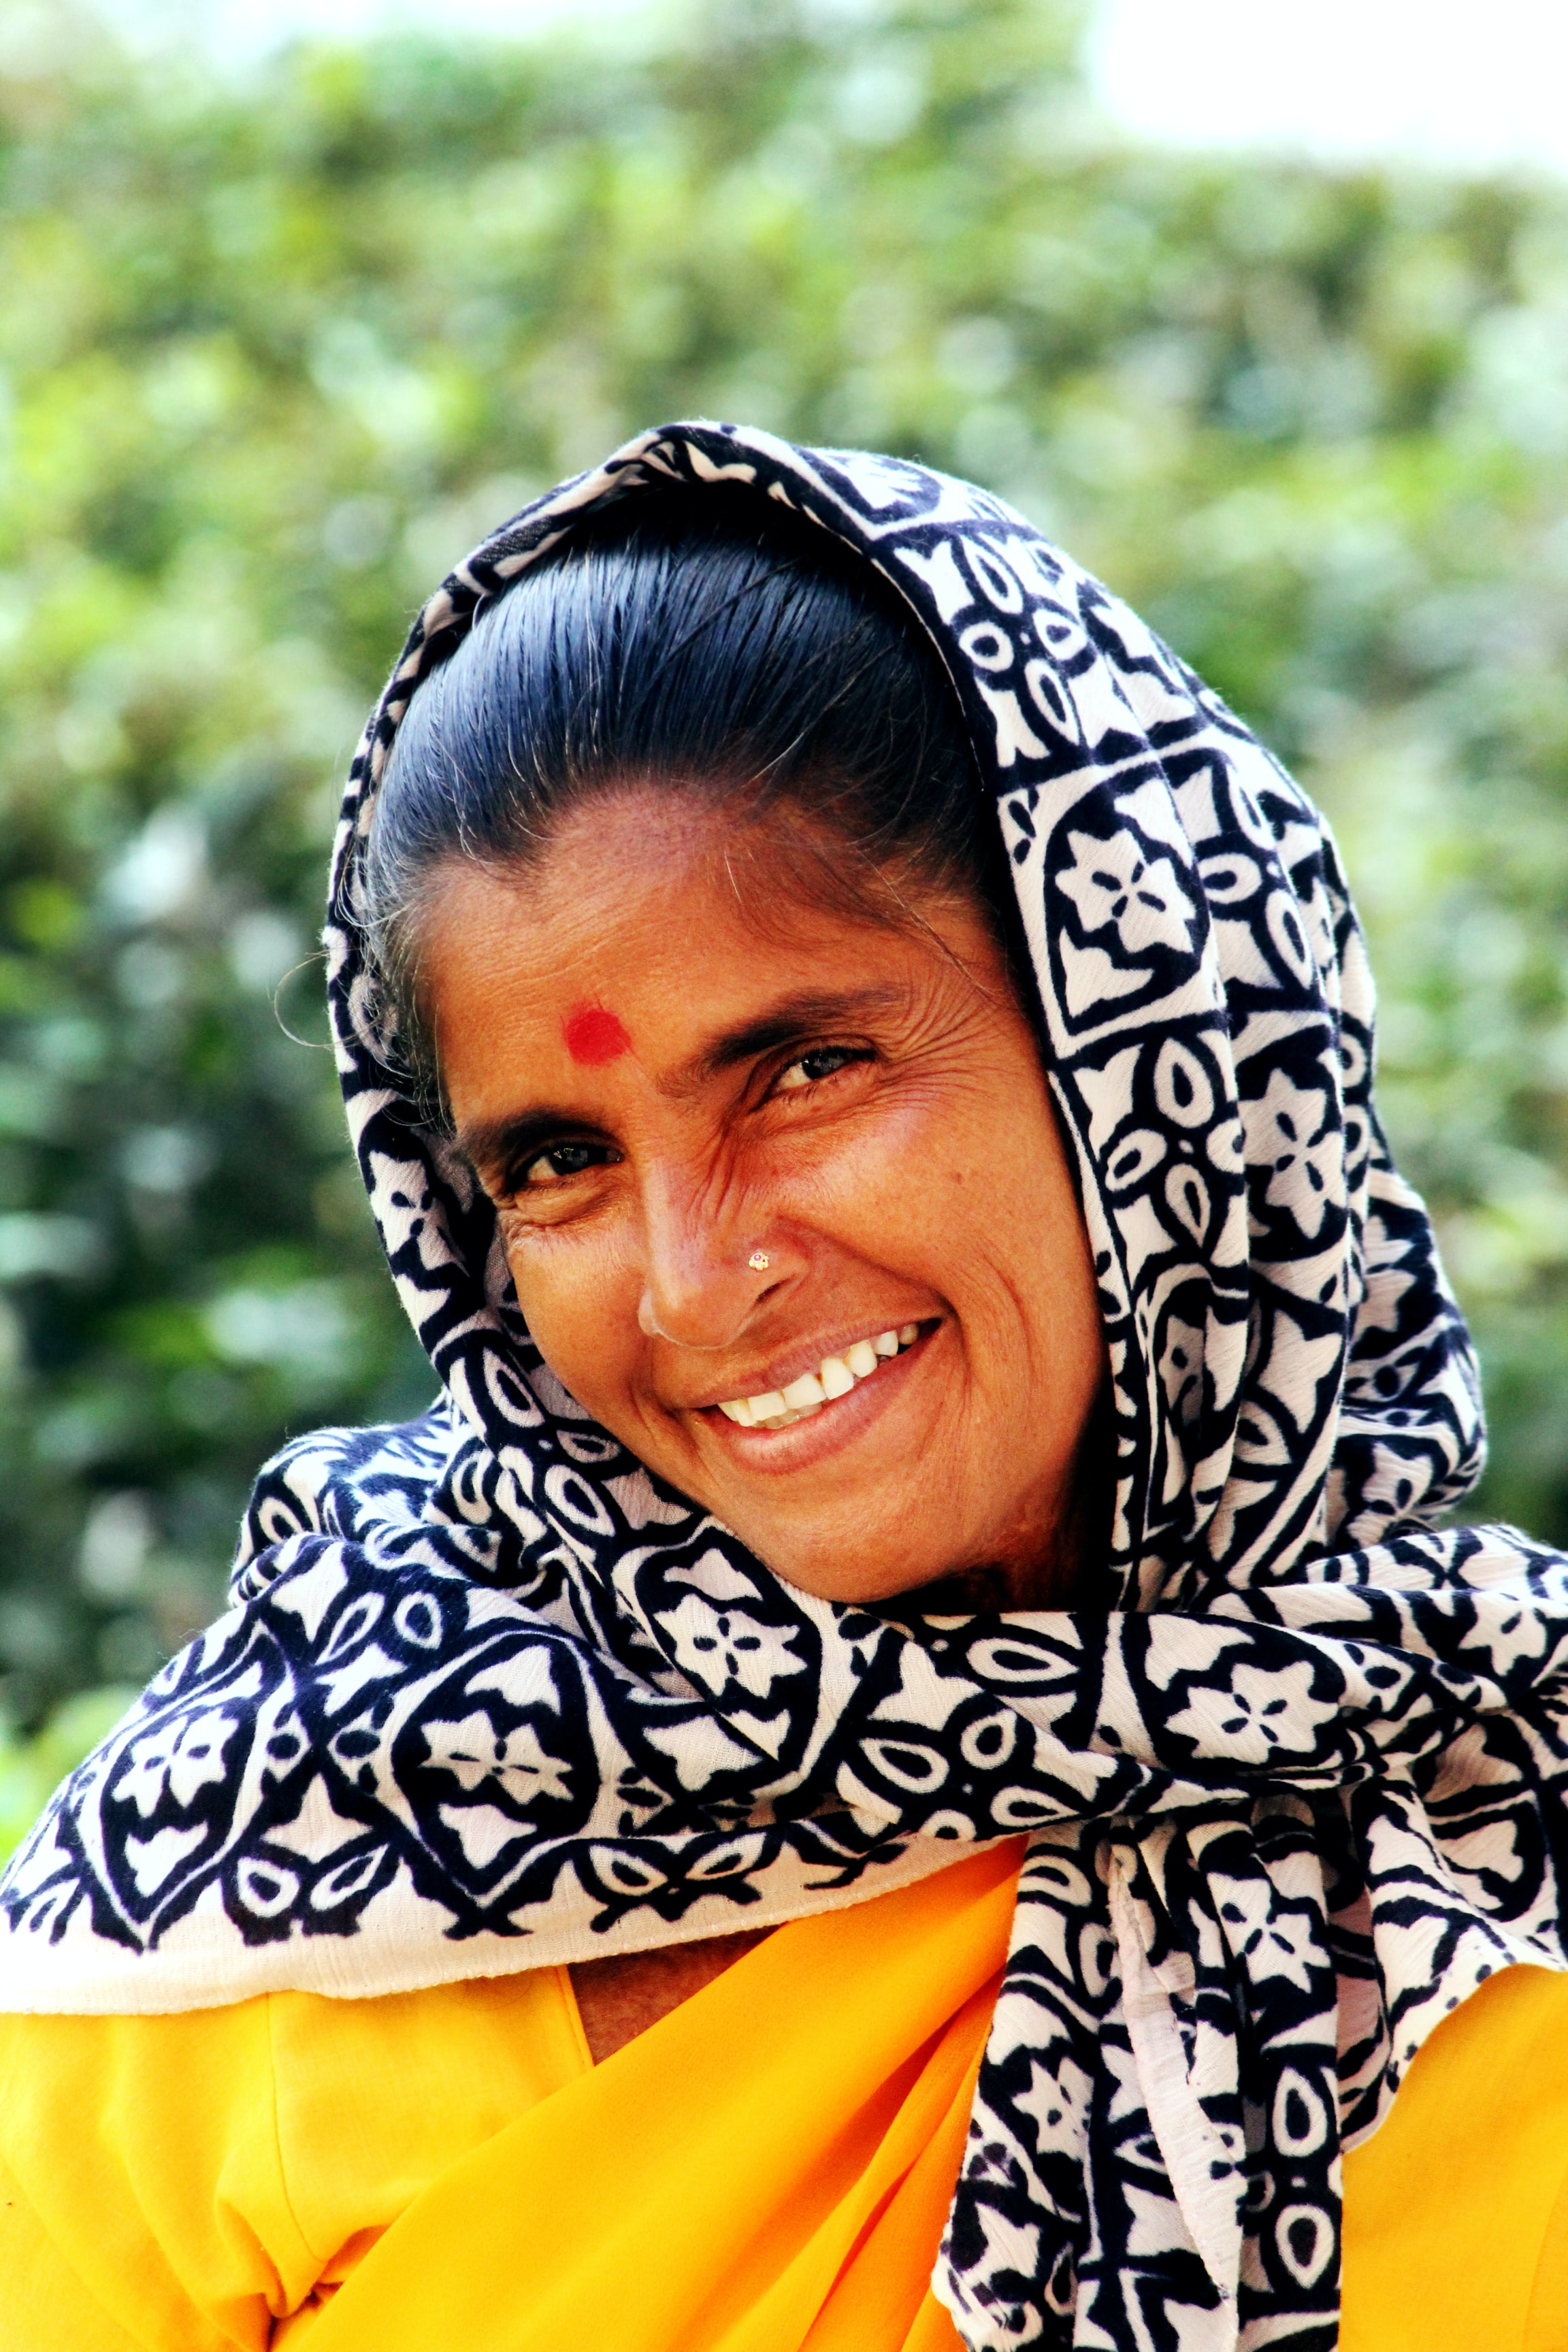 A woman with black hair, a loose head scarf, and yellow top smiles. She has a bindi on her forehead and a small piercing in her nostril.